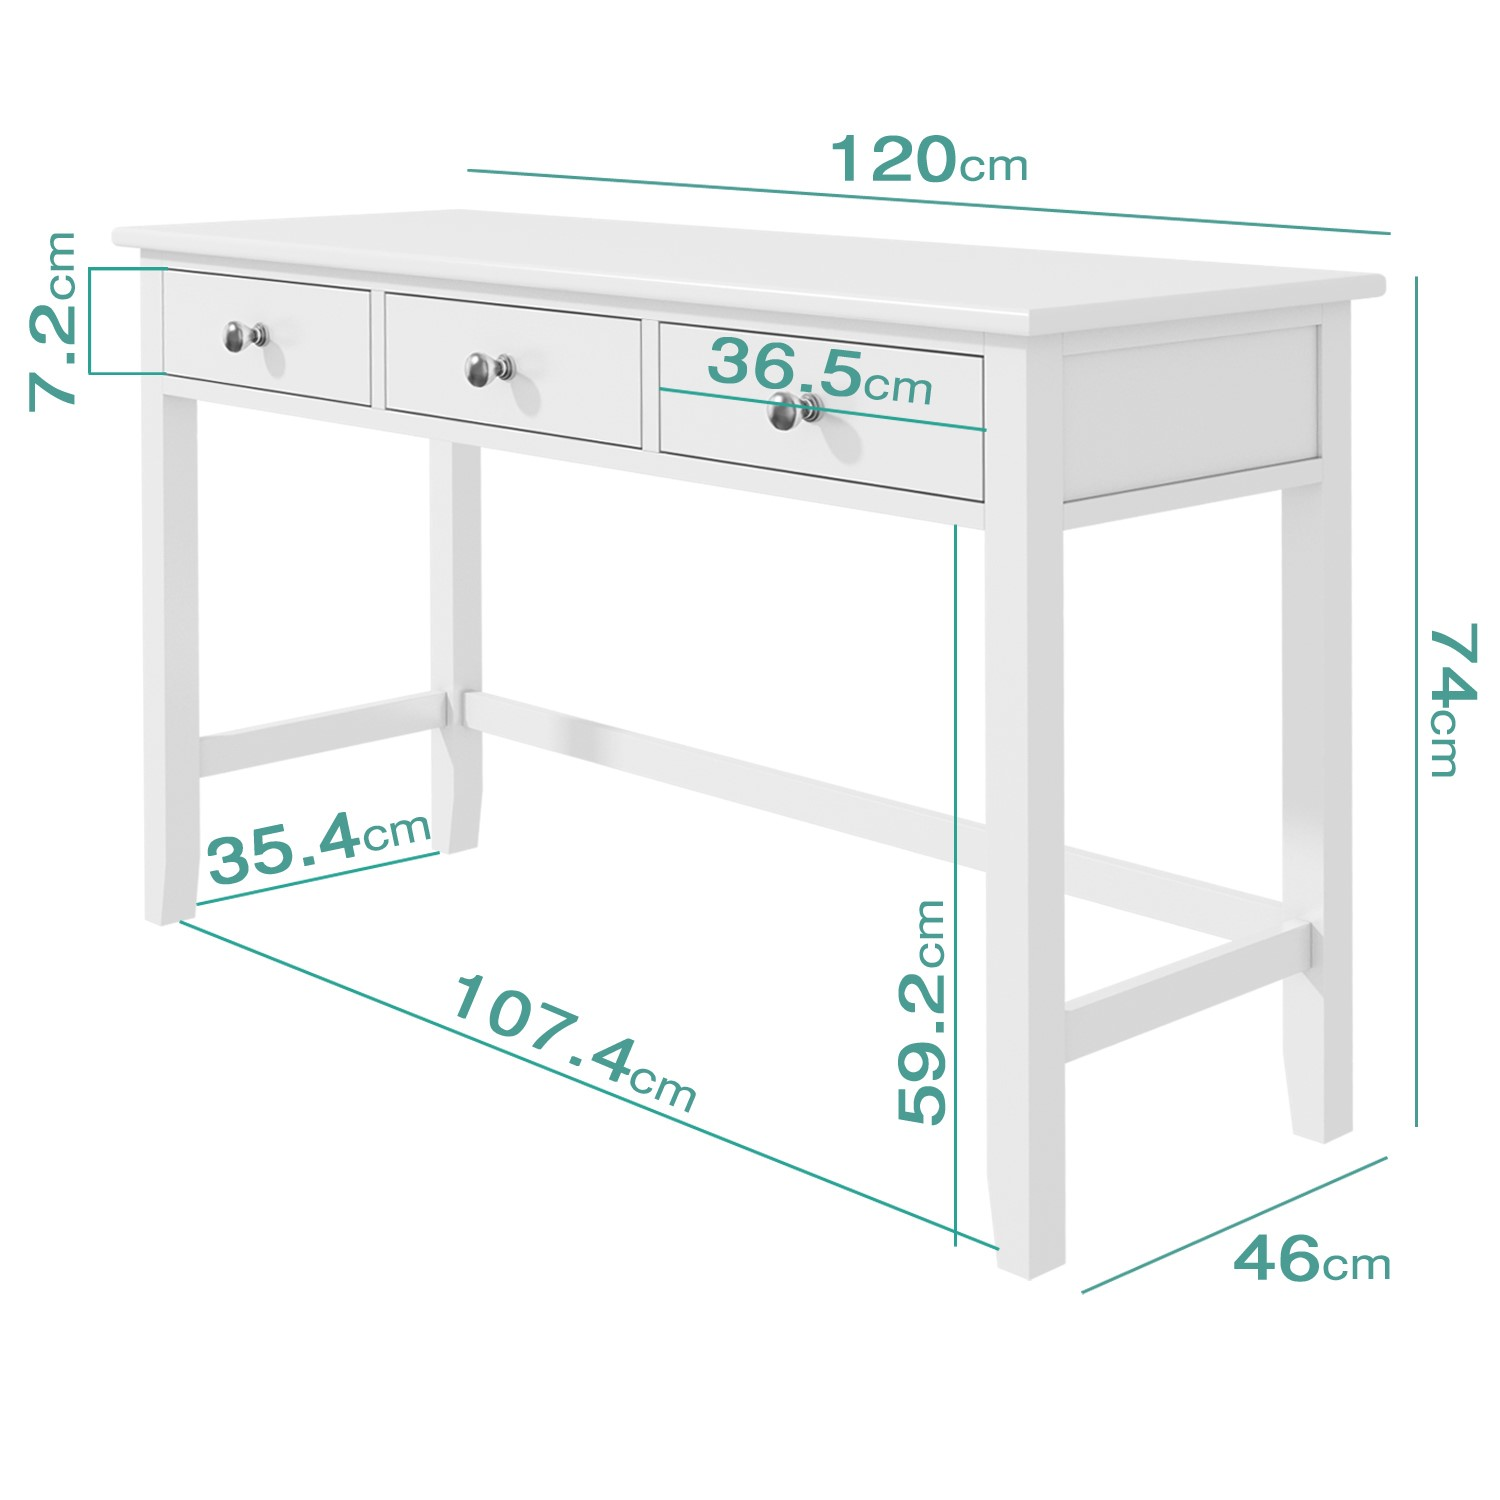 Wooden White Console Table With Drawers, Sofa Table Desk With Drawers